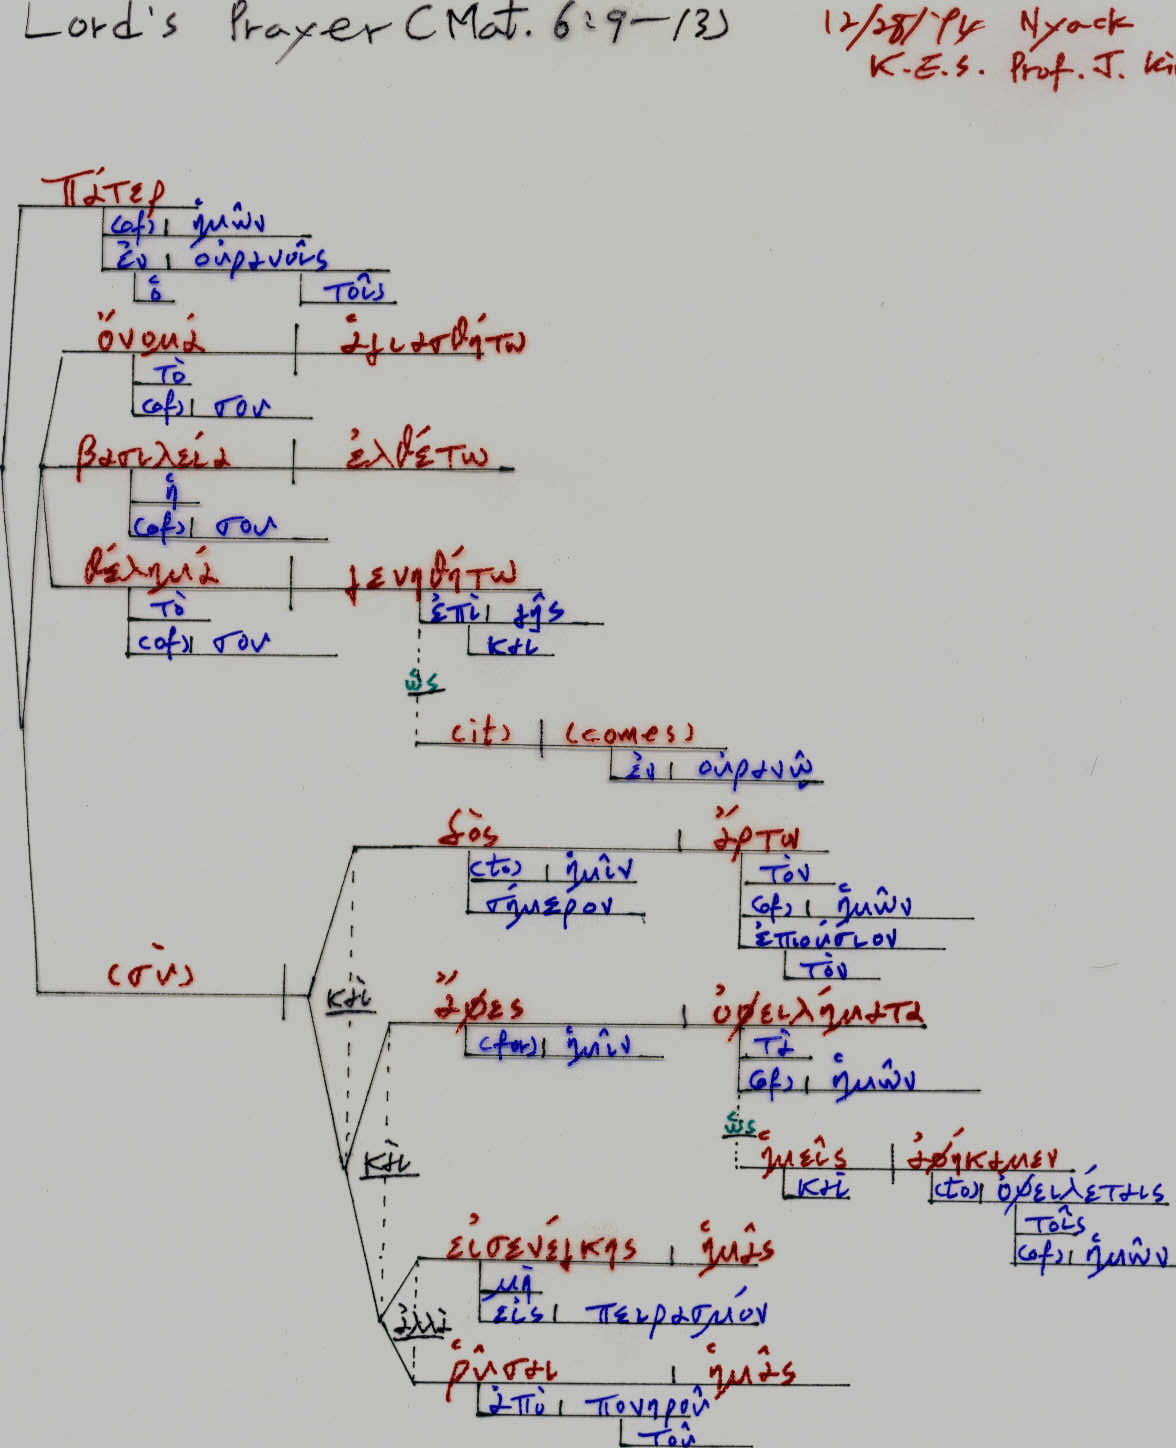 Nt Greek Resources Diagramming Linking Verbs Example Of Lords Prayer By Jintae Kim Verb